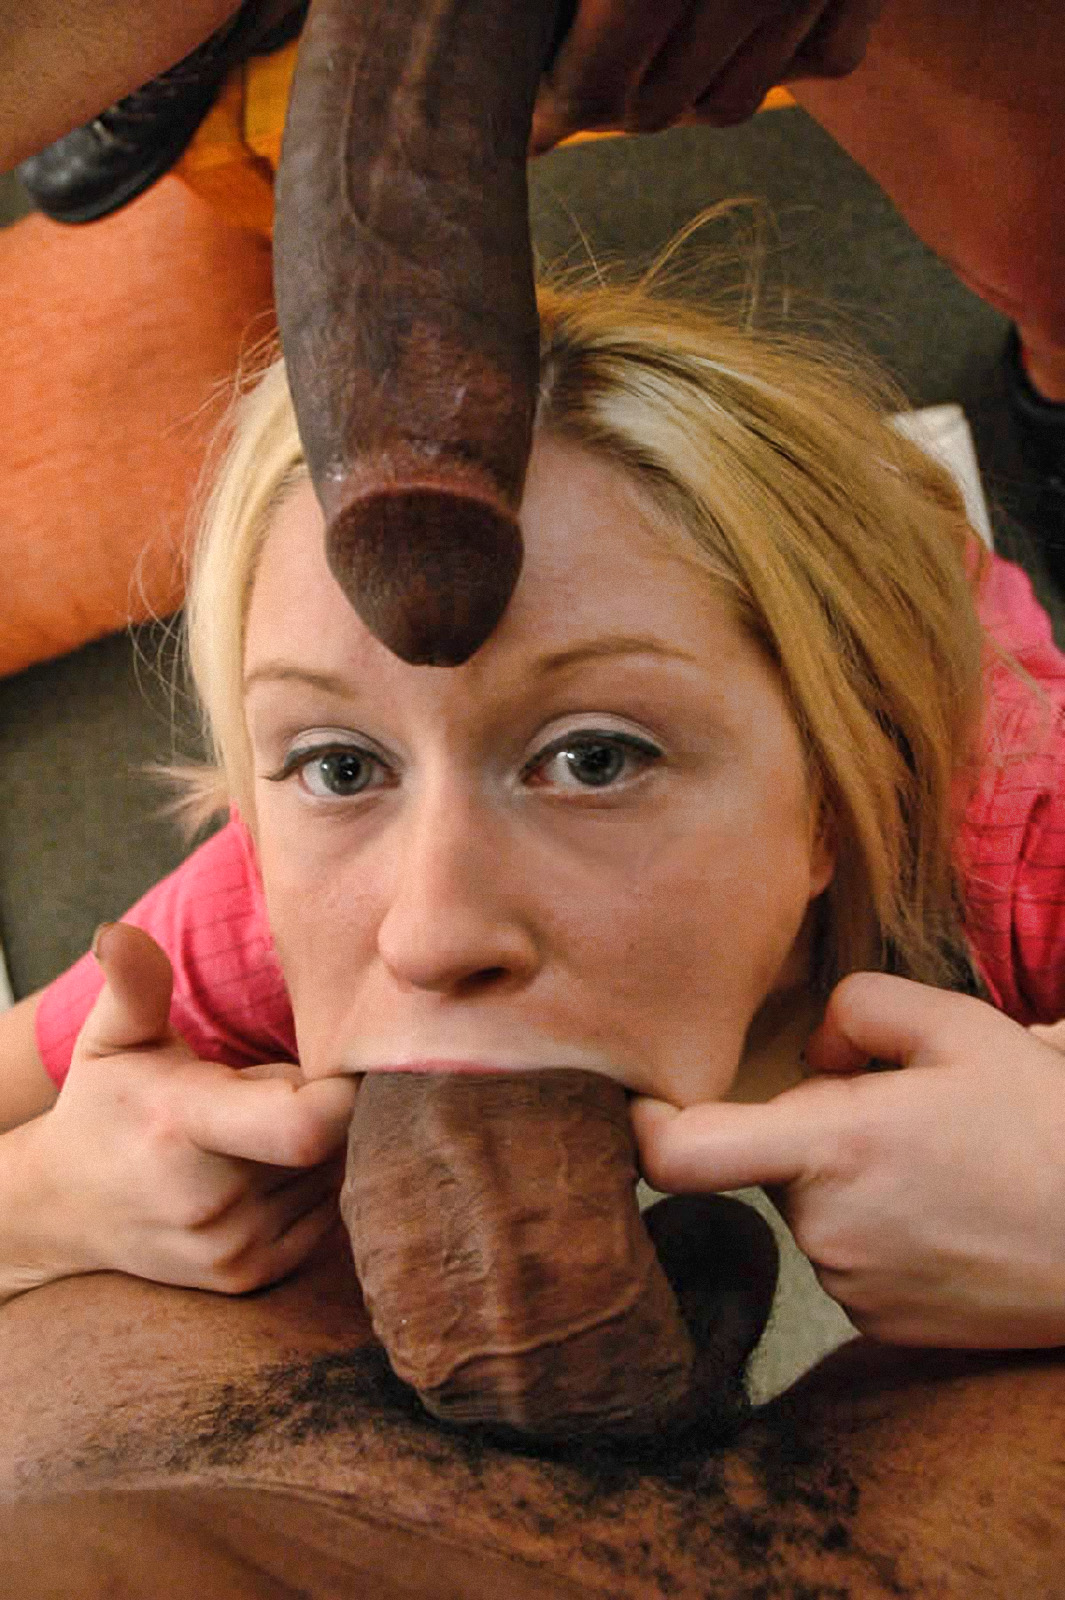 Too big for her mouth